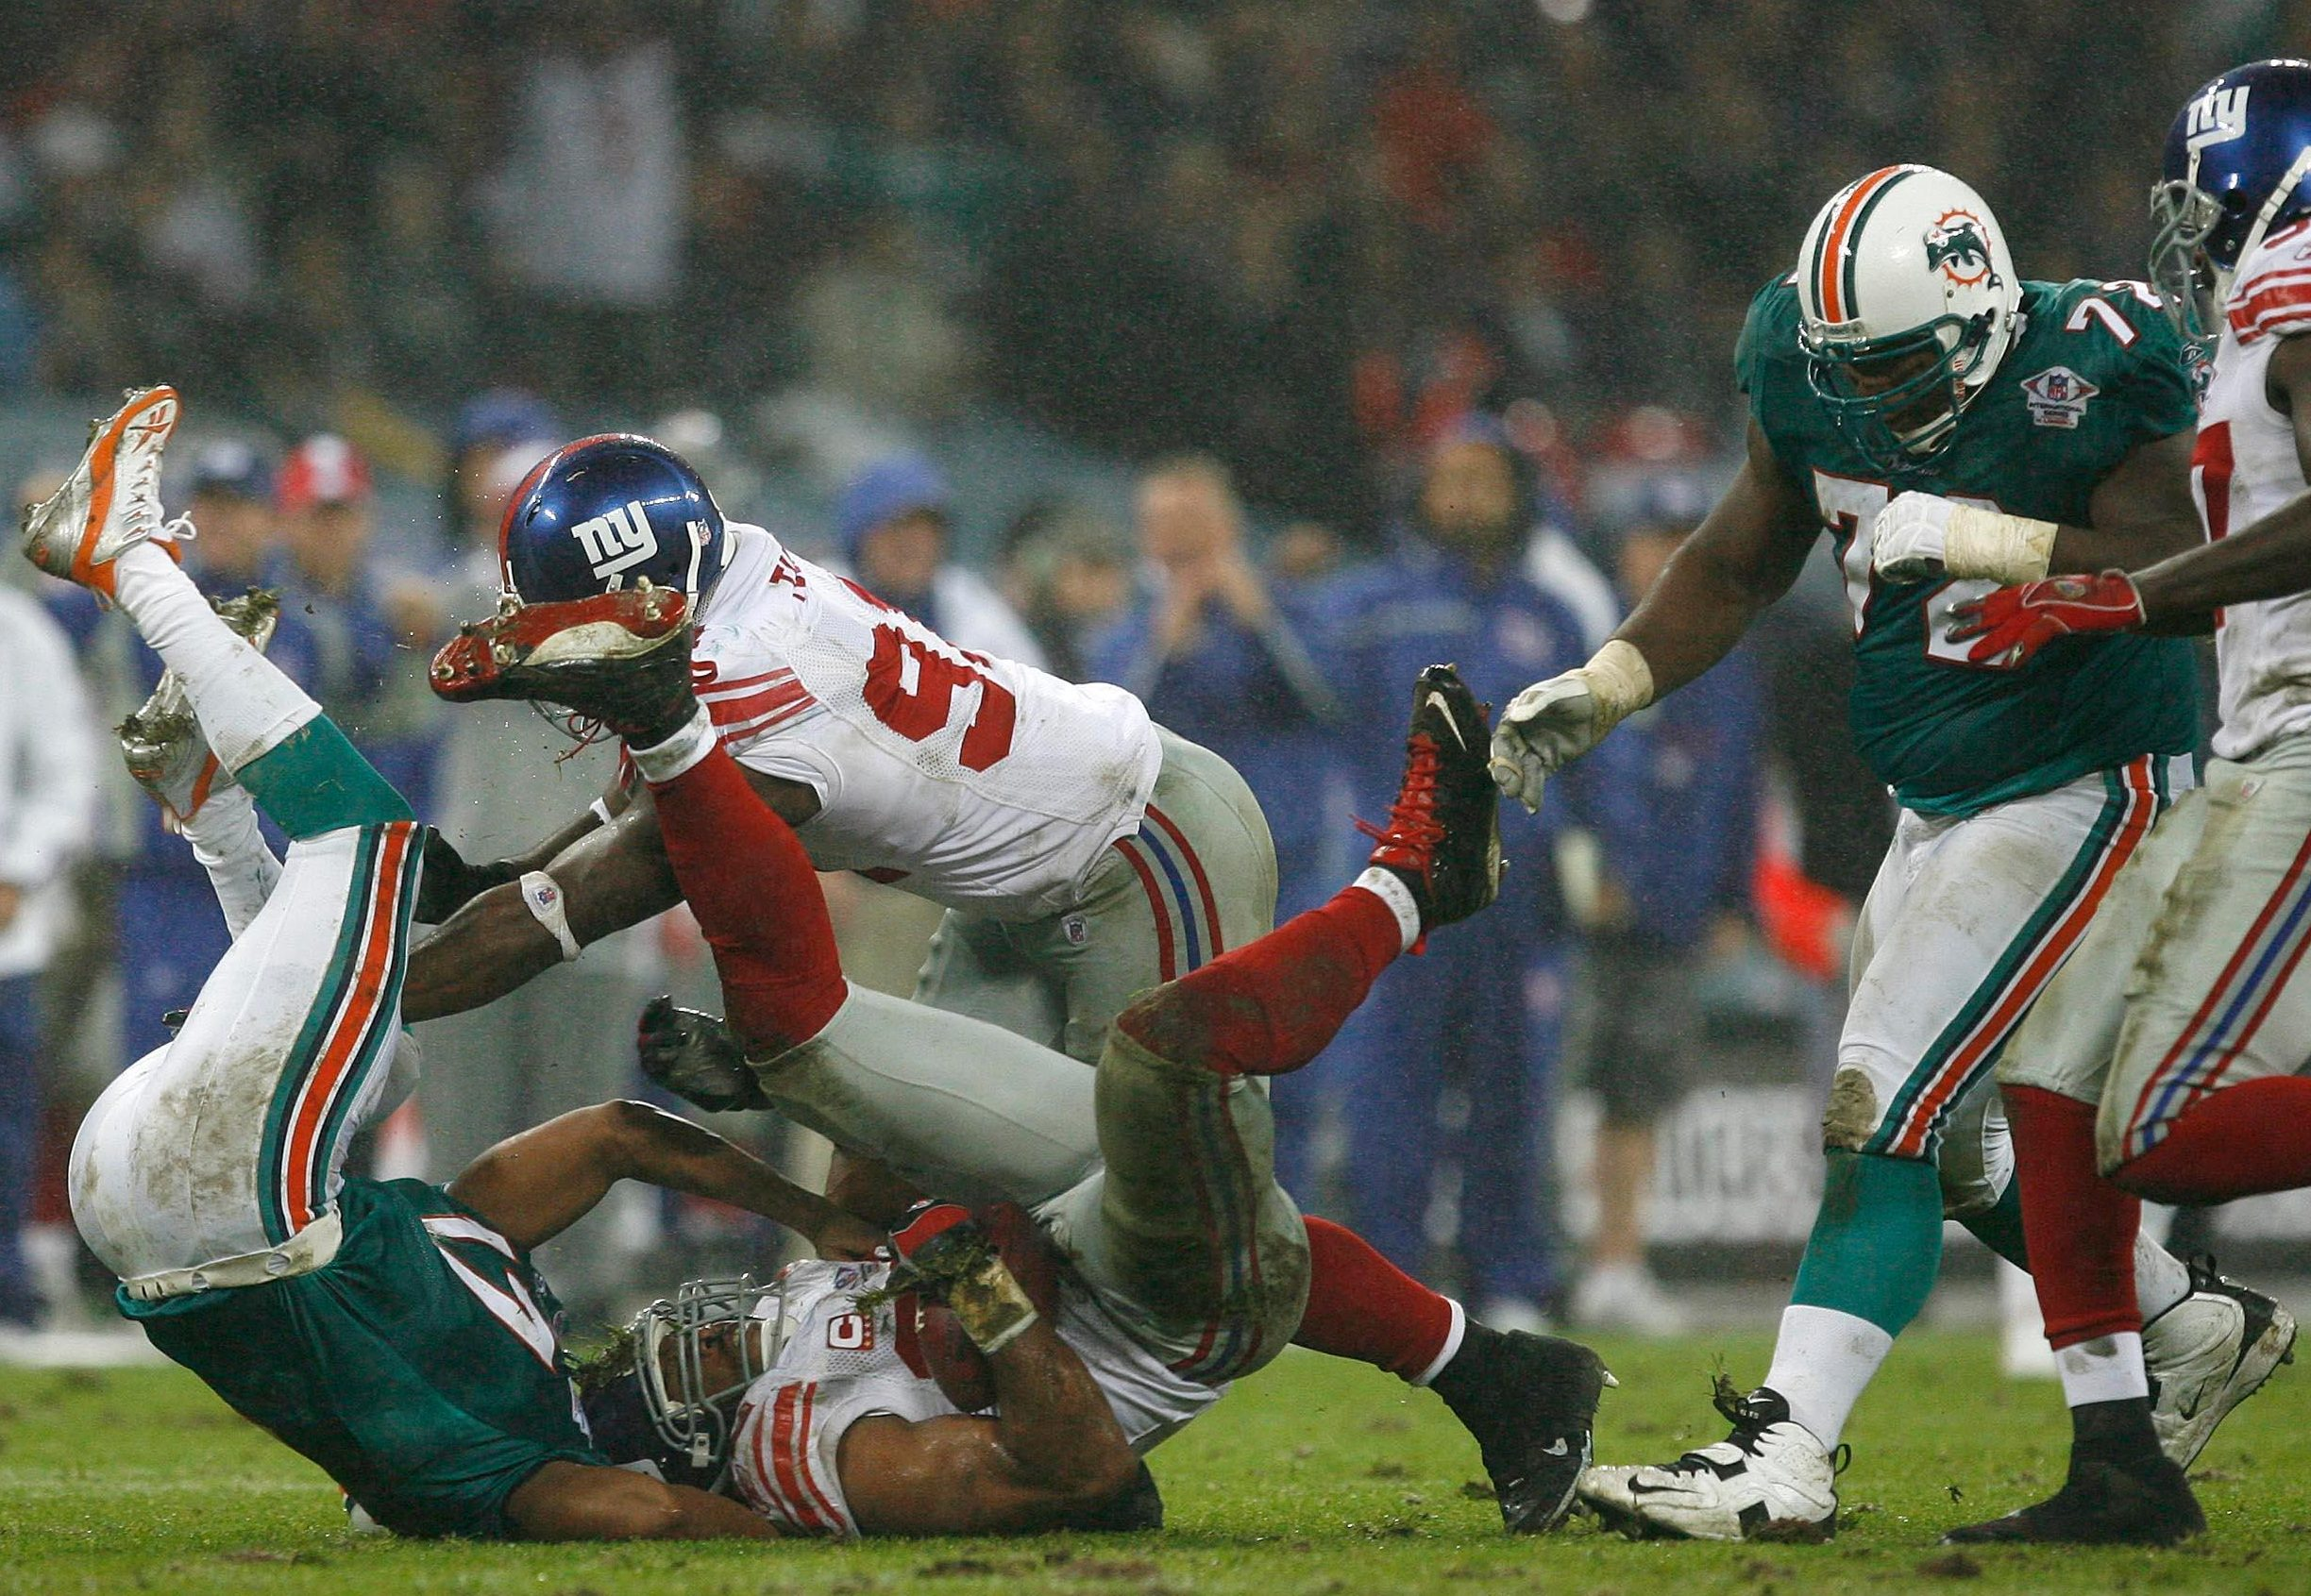 In 2007 the Miami Dolphins beat the New York Giants in the first International Series game at Wembley